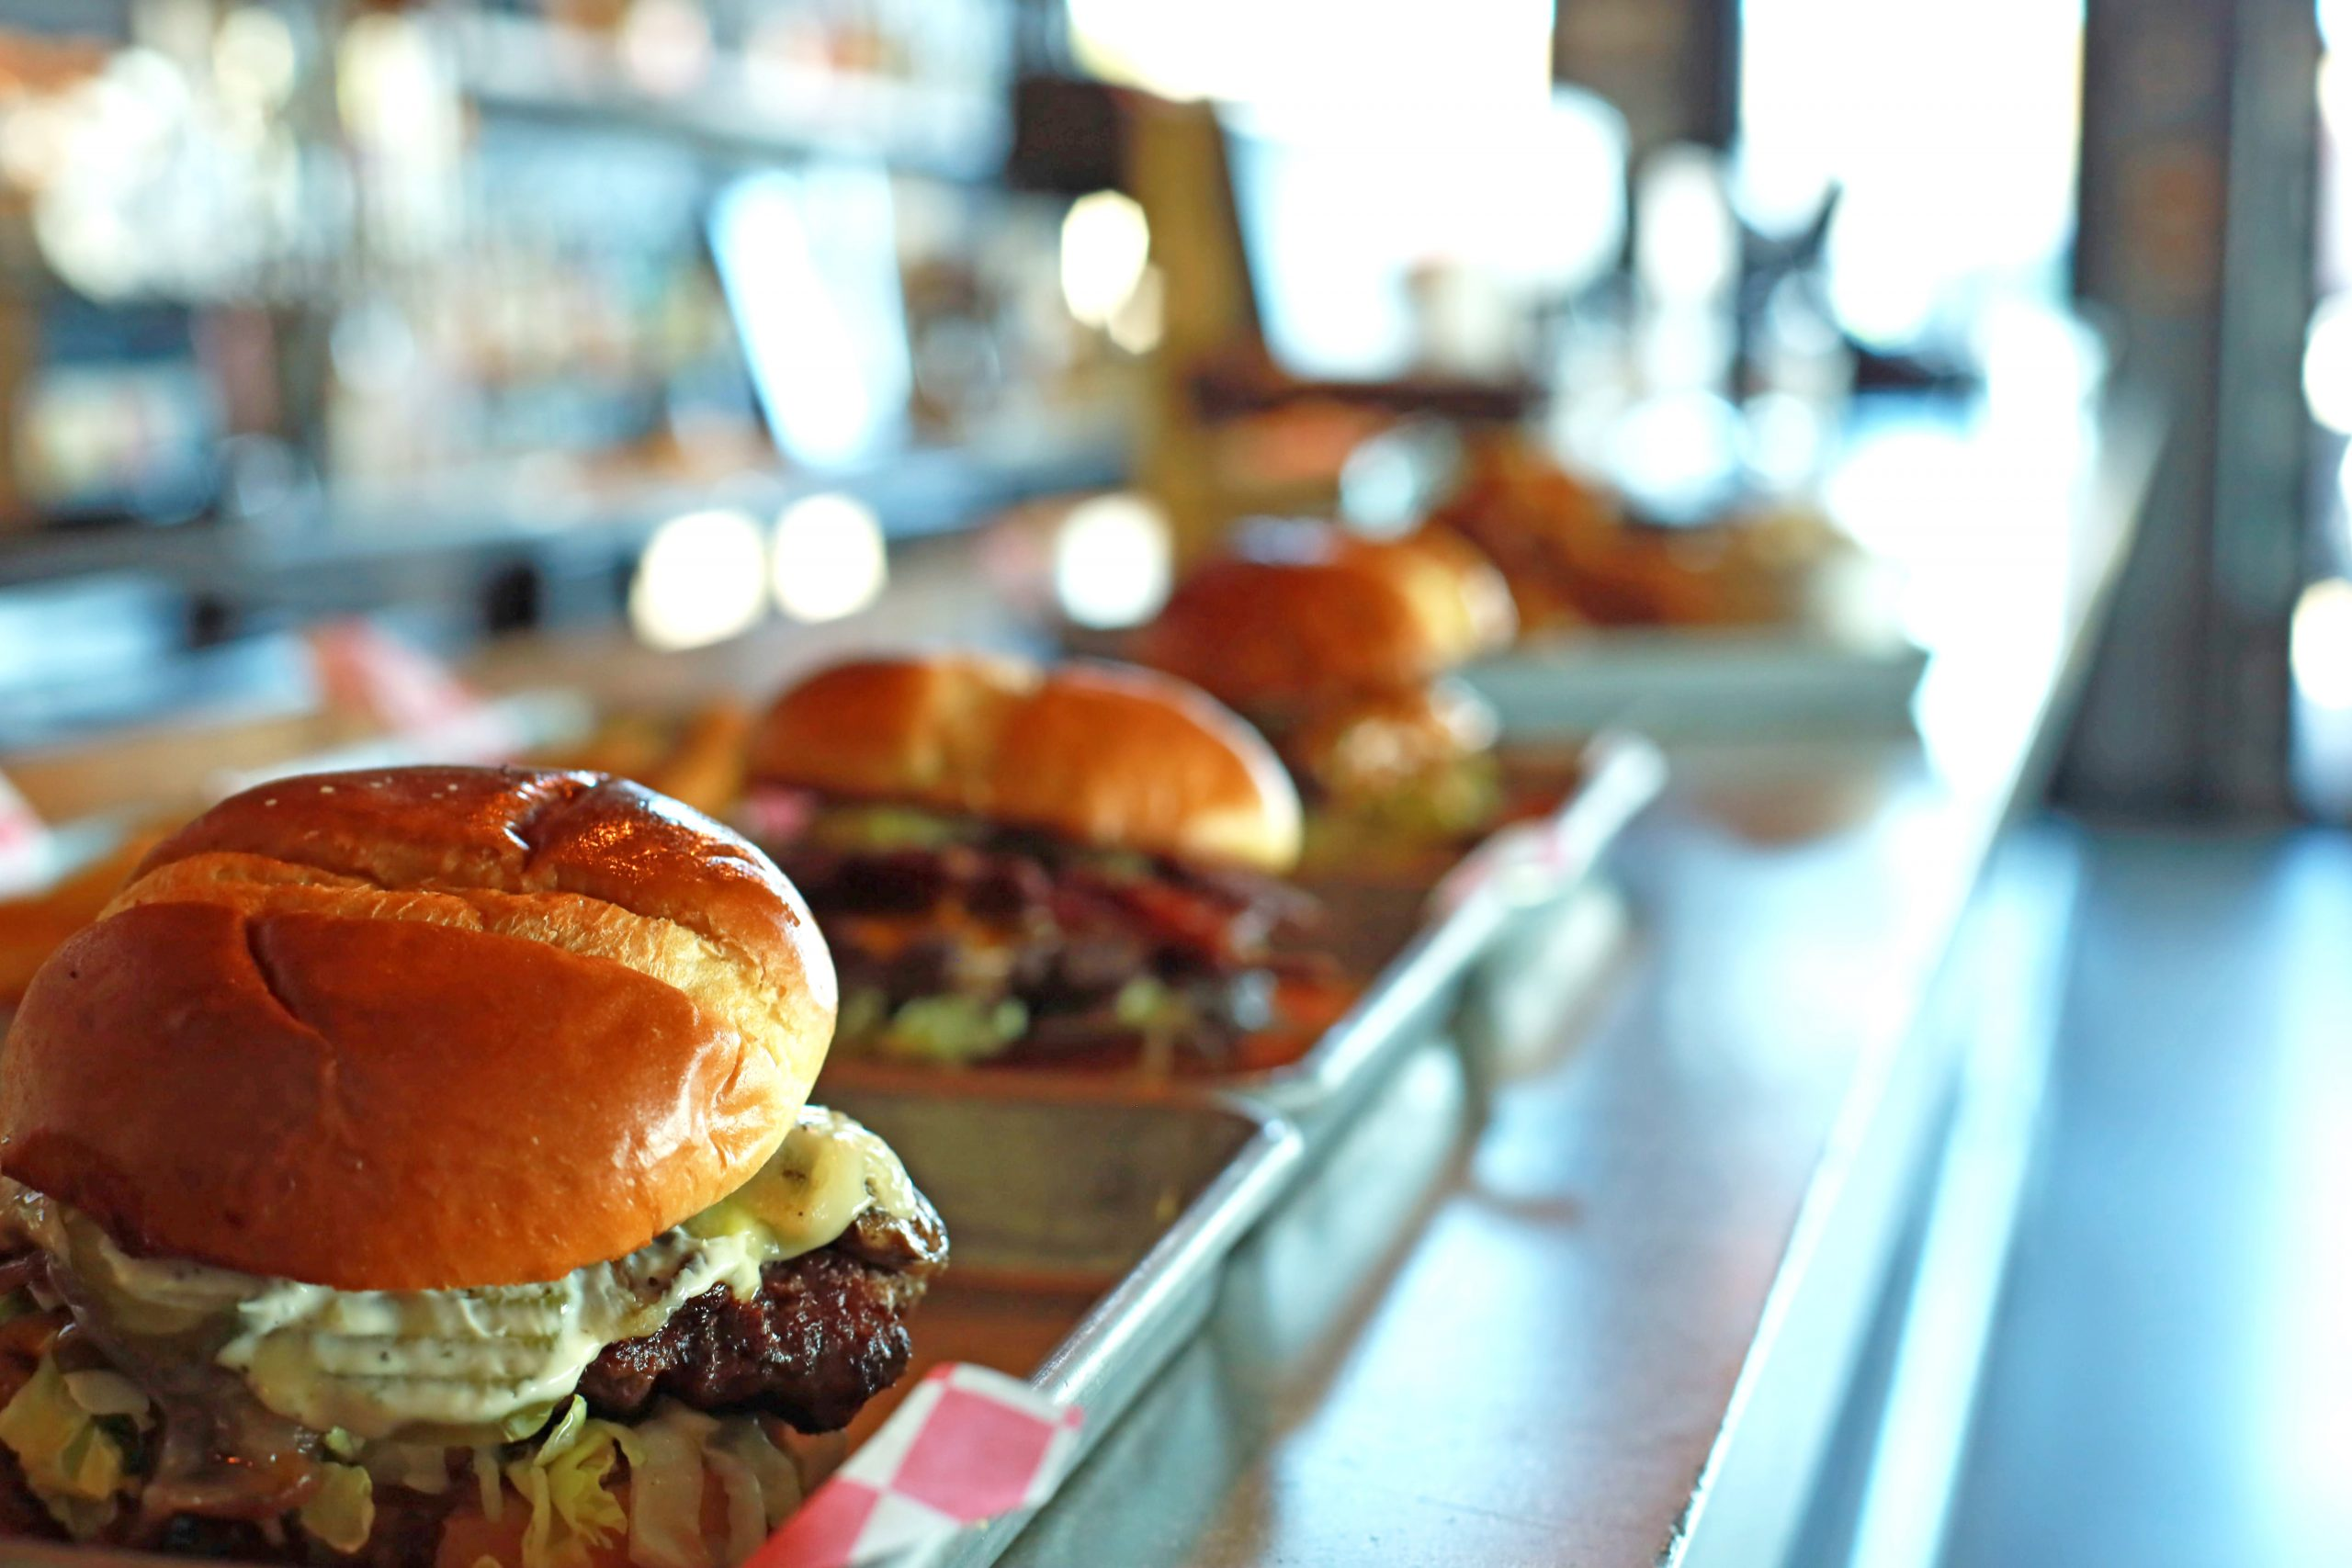 Handcrafted burgers at Farmhouse Burgers, BBQ & Events